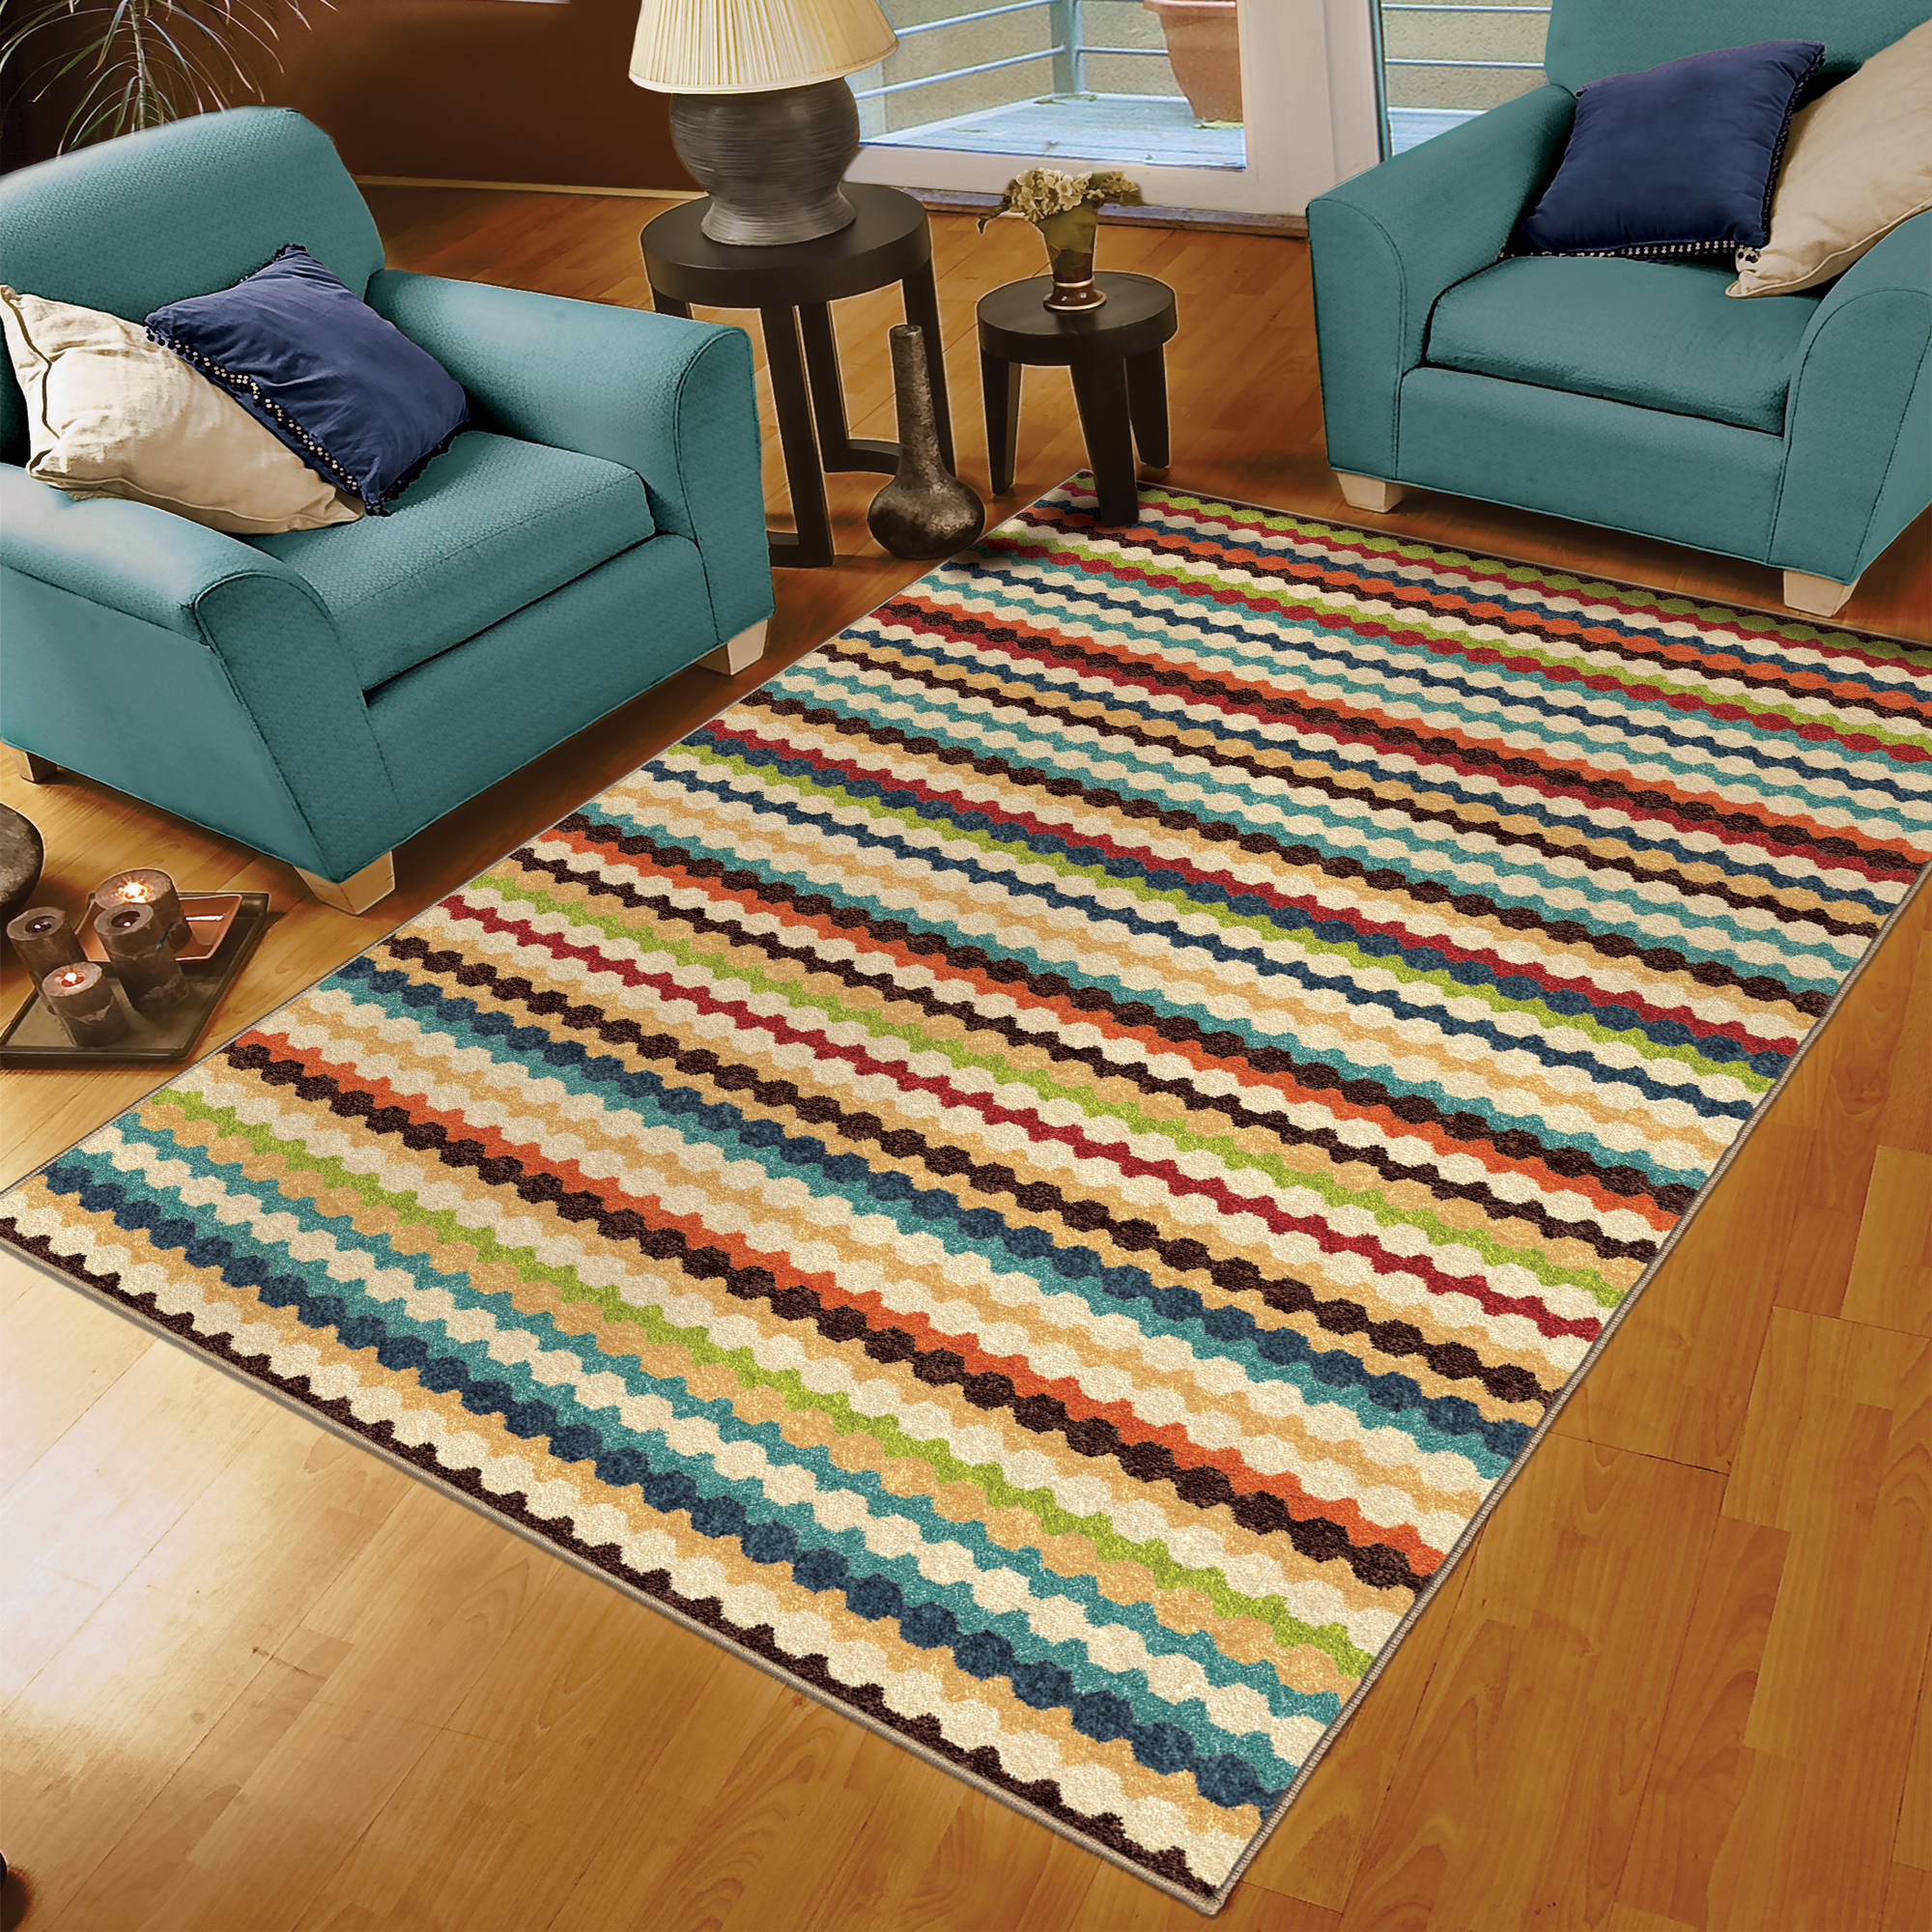 Orian Rugs Indoor/Outdoor Nik Nak Multi-Colored Area Rug or Runner ...